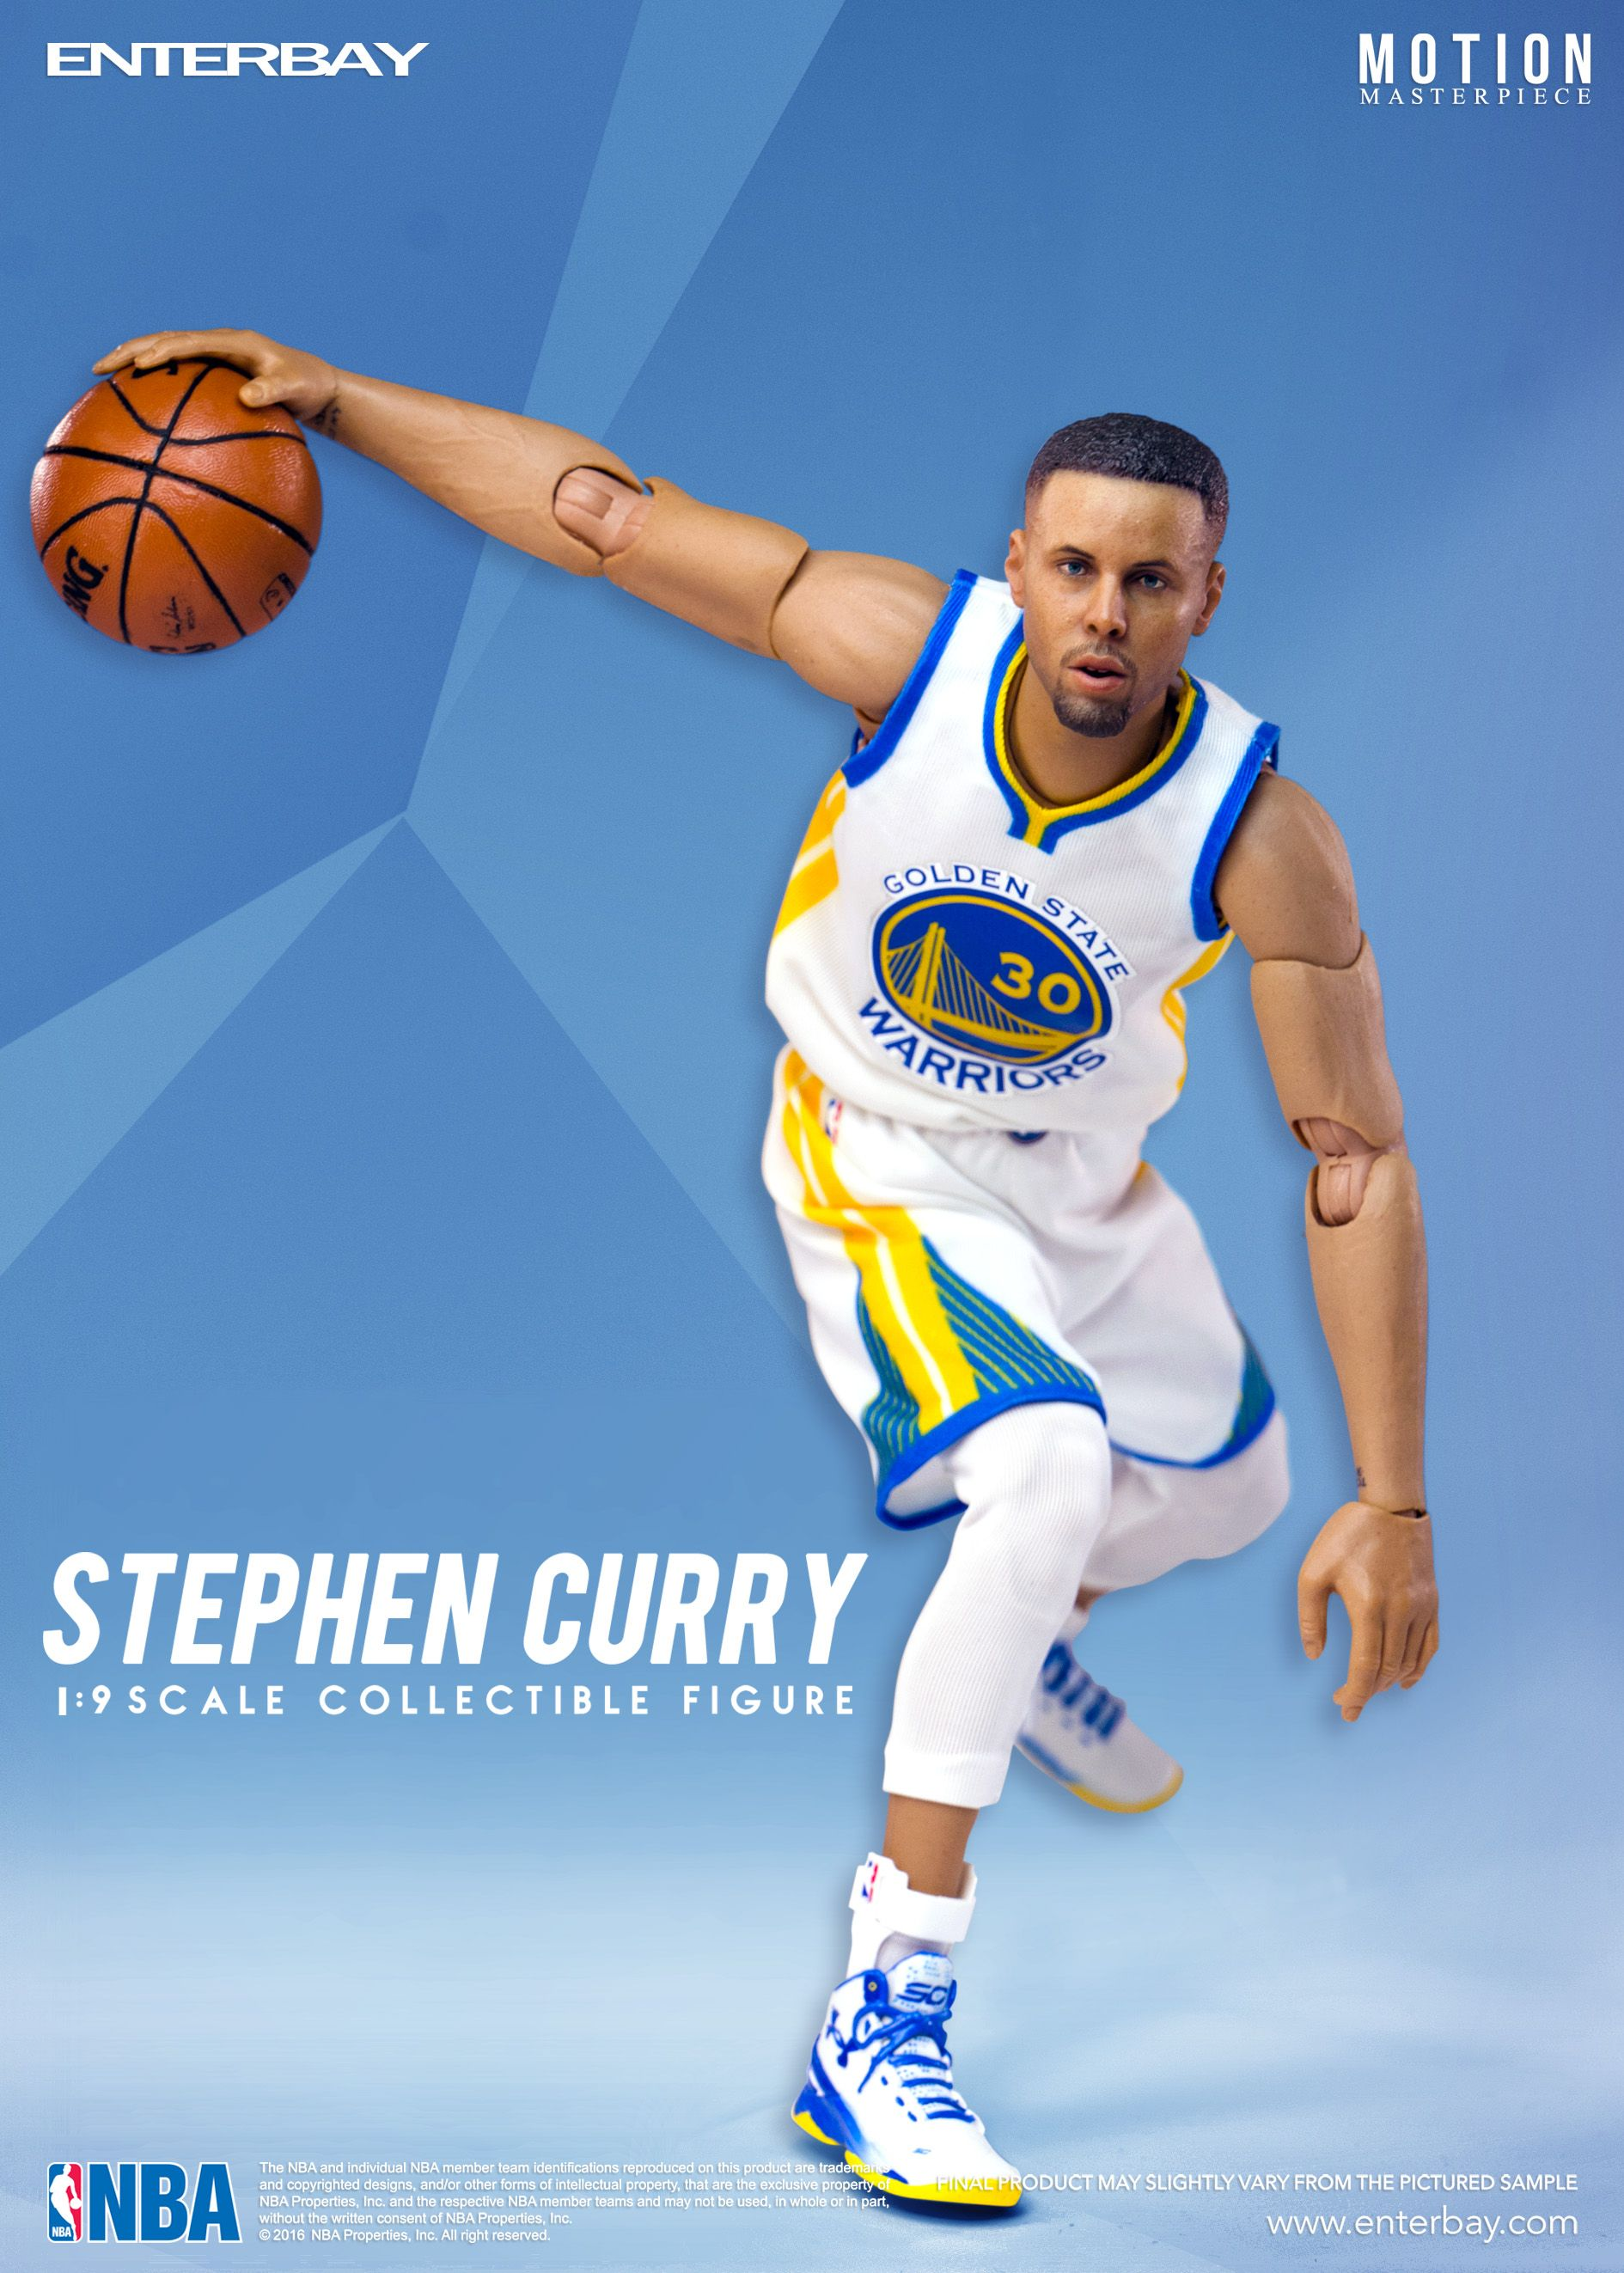 e1f2b3d61c7280 1 9 Motion Master Pieces Stephen Curry by ENTERBAY Official which invites  you to experience the innovation of our officially licenced NBA   movie ...